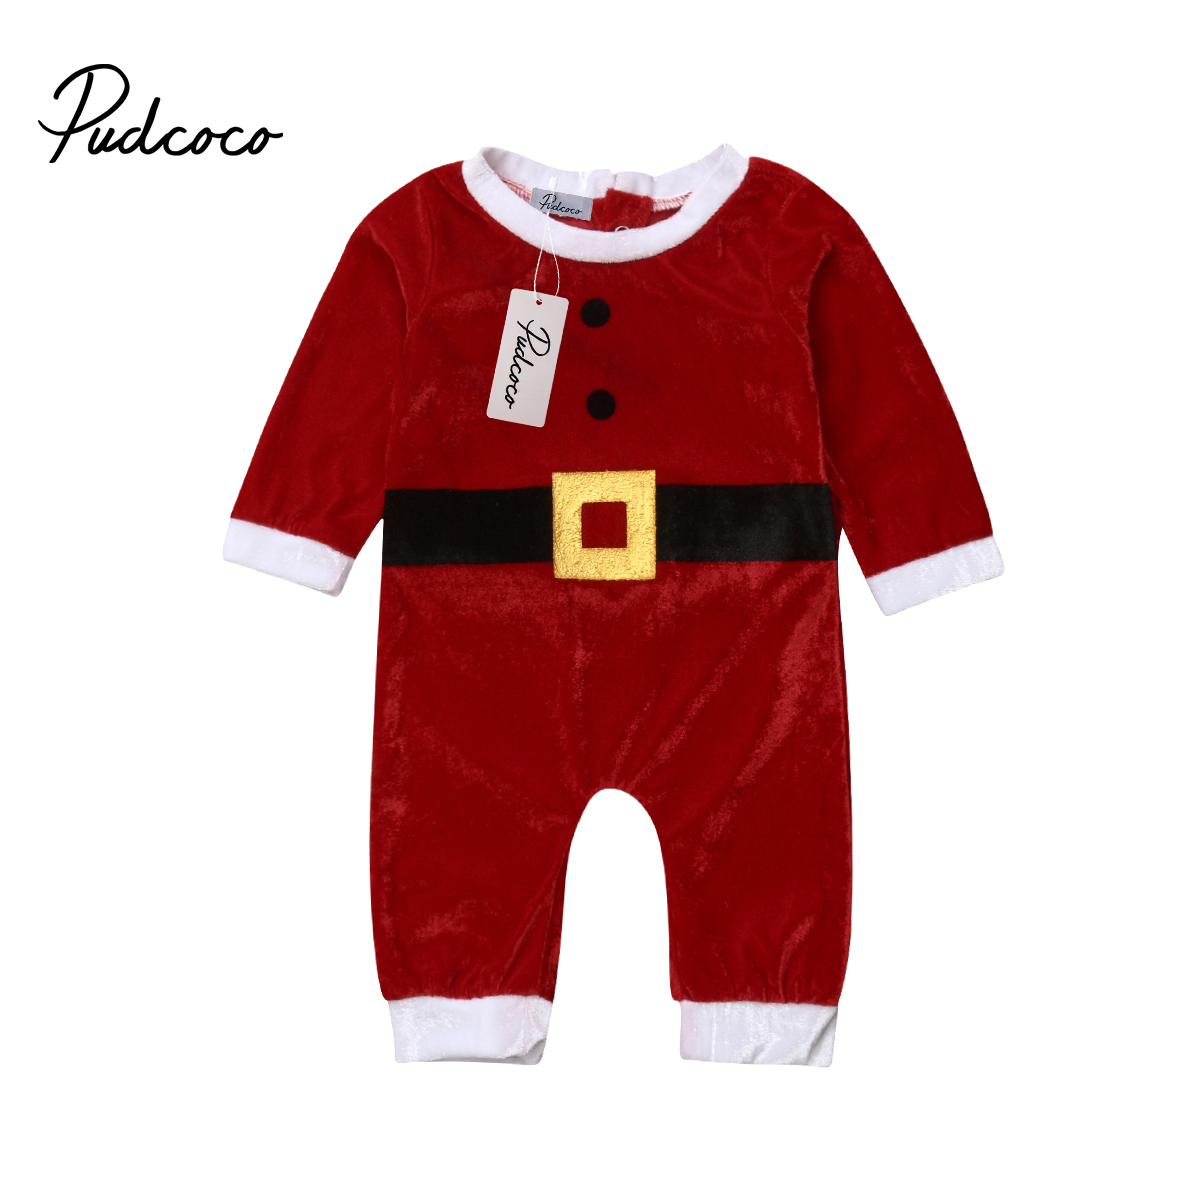 Pudcoco Baby Clothes One Piece Winter Romper Christmas Fit Nightwear New Born Baby Clothes Santa Claus Warm Long Sleeve Romper